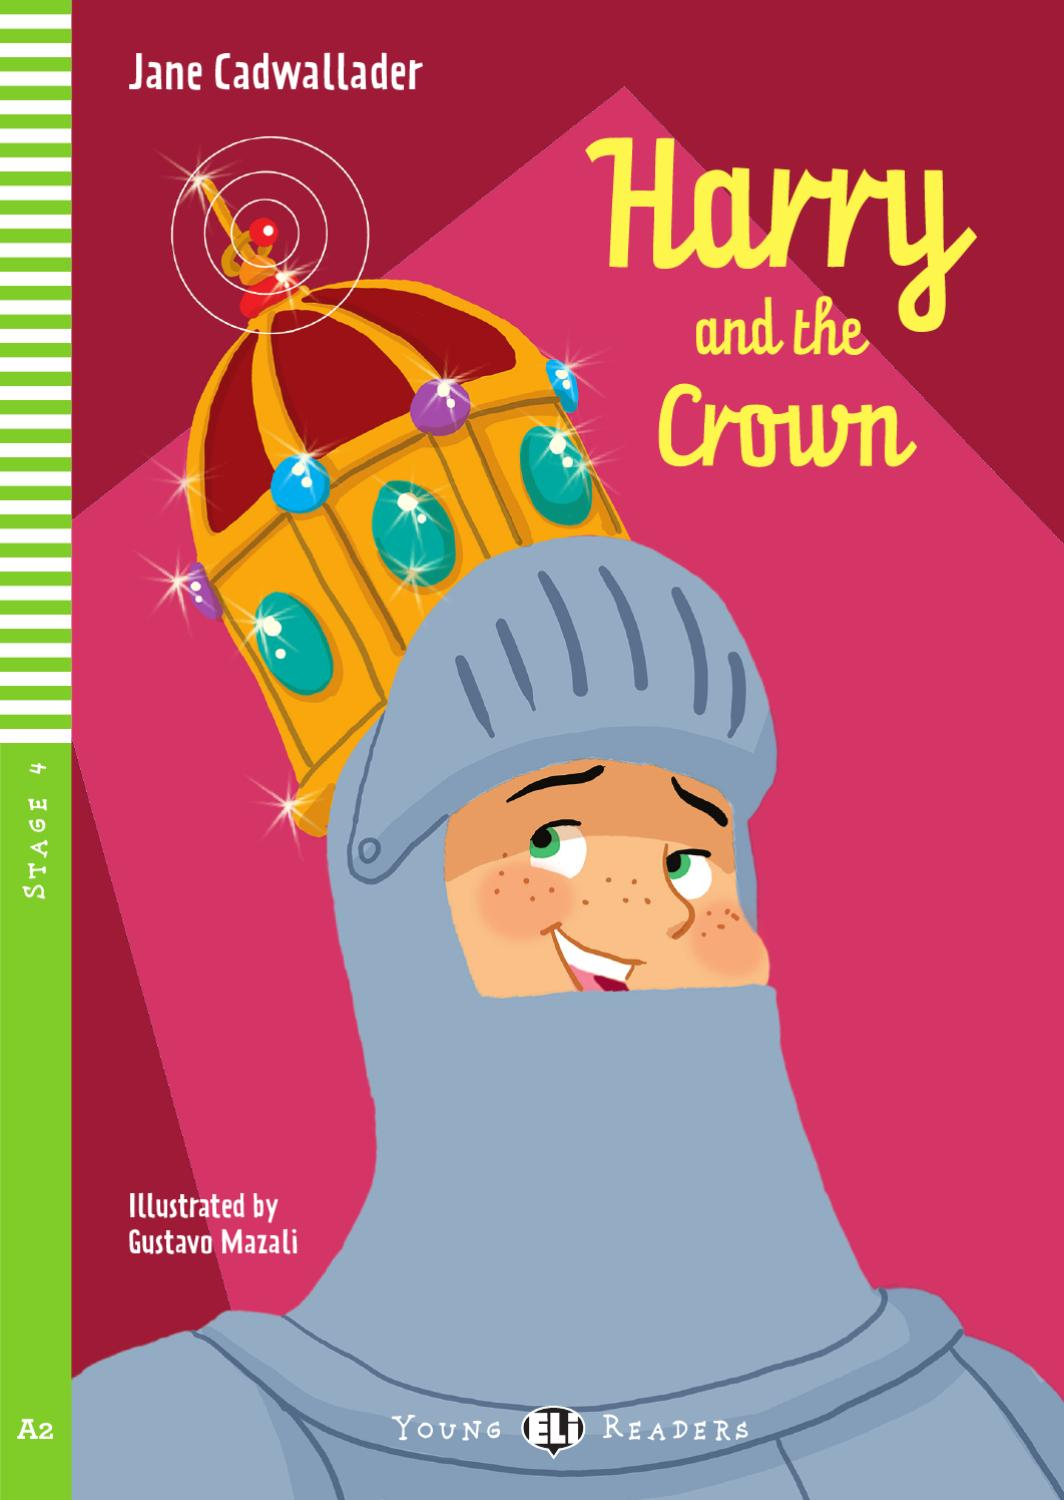 Harry And The Crown Jane Cadwallader By Eli Publishing Issuu Crown, king, queen, hat, cartoon. harry and the crown jane cadwallader